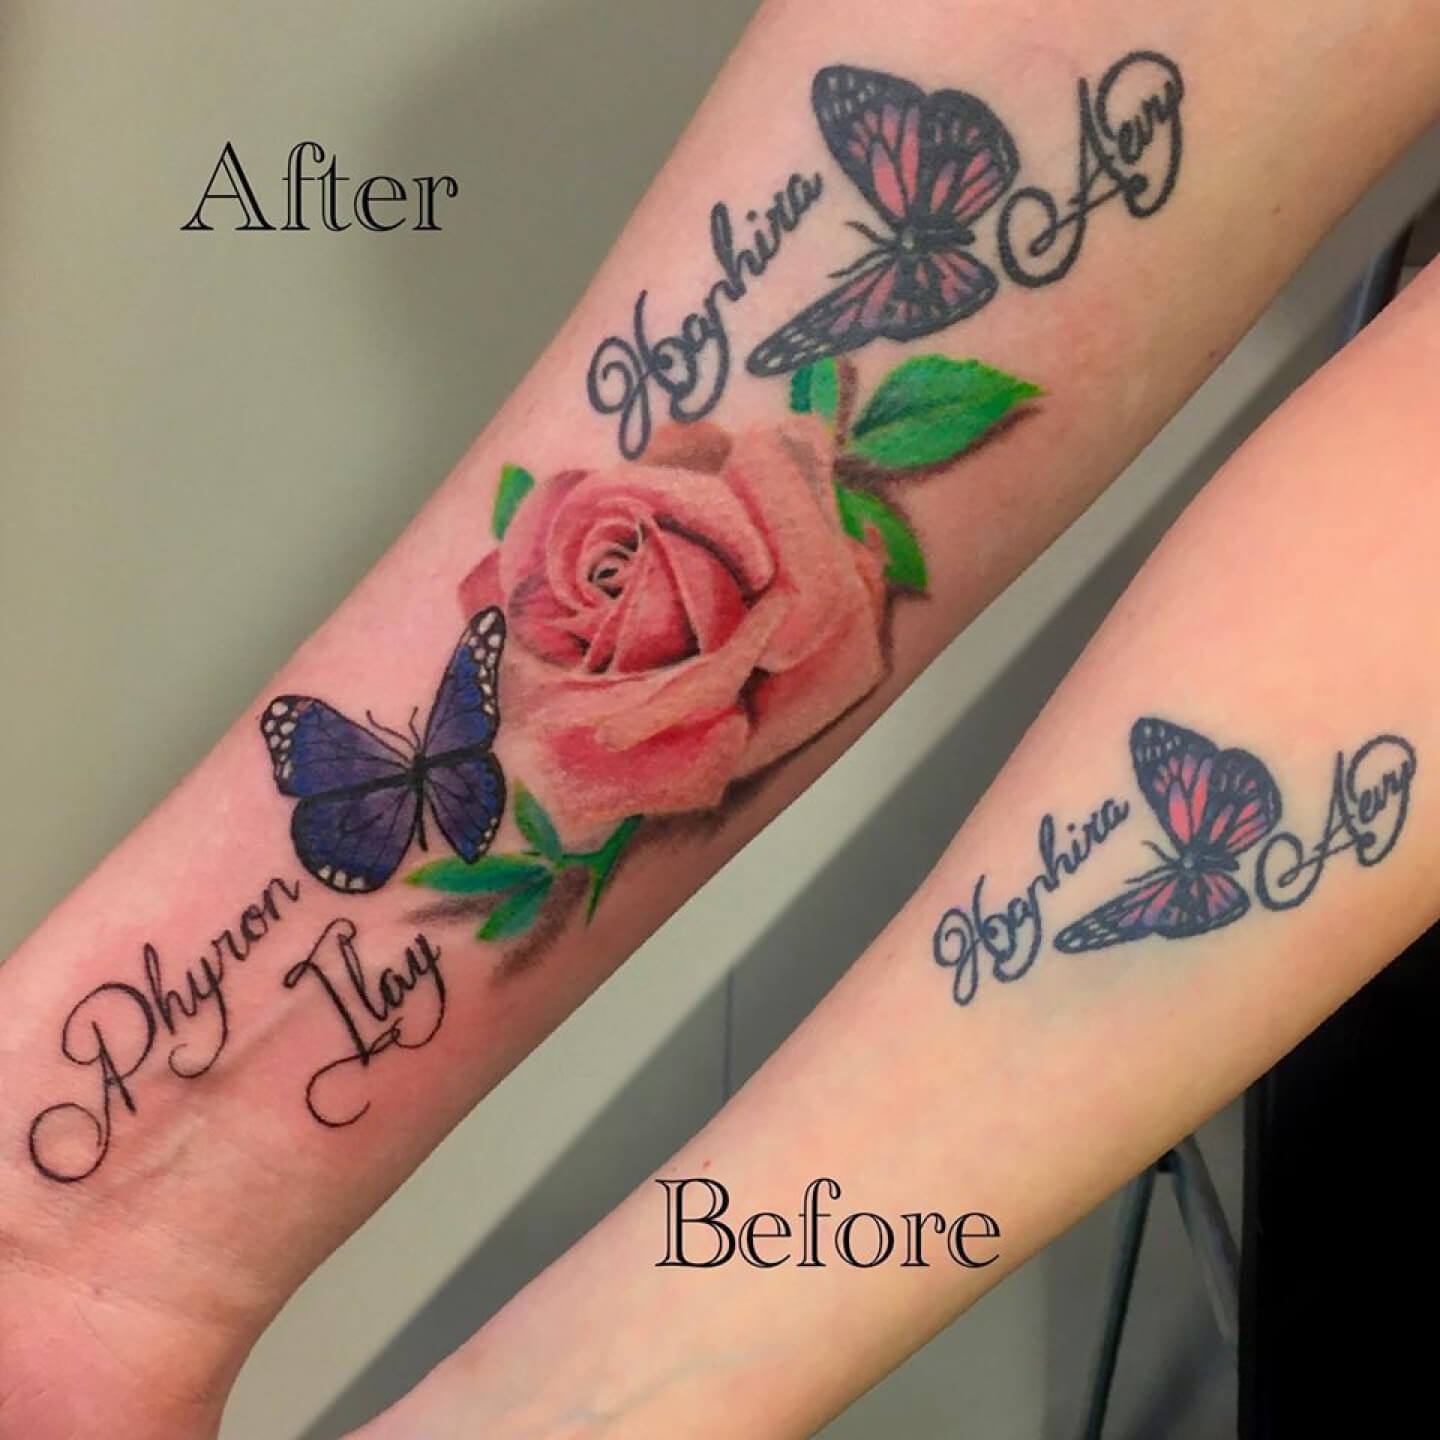 Realistic Rose Tattoo Butterfly Name Colour Color Realism Lettering Fineline Dutch Female Feminine Armt Ink Inked Drenthe Tattooshop Assen Blueroottattoo